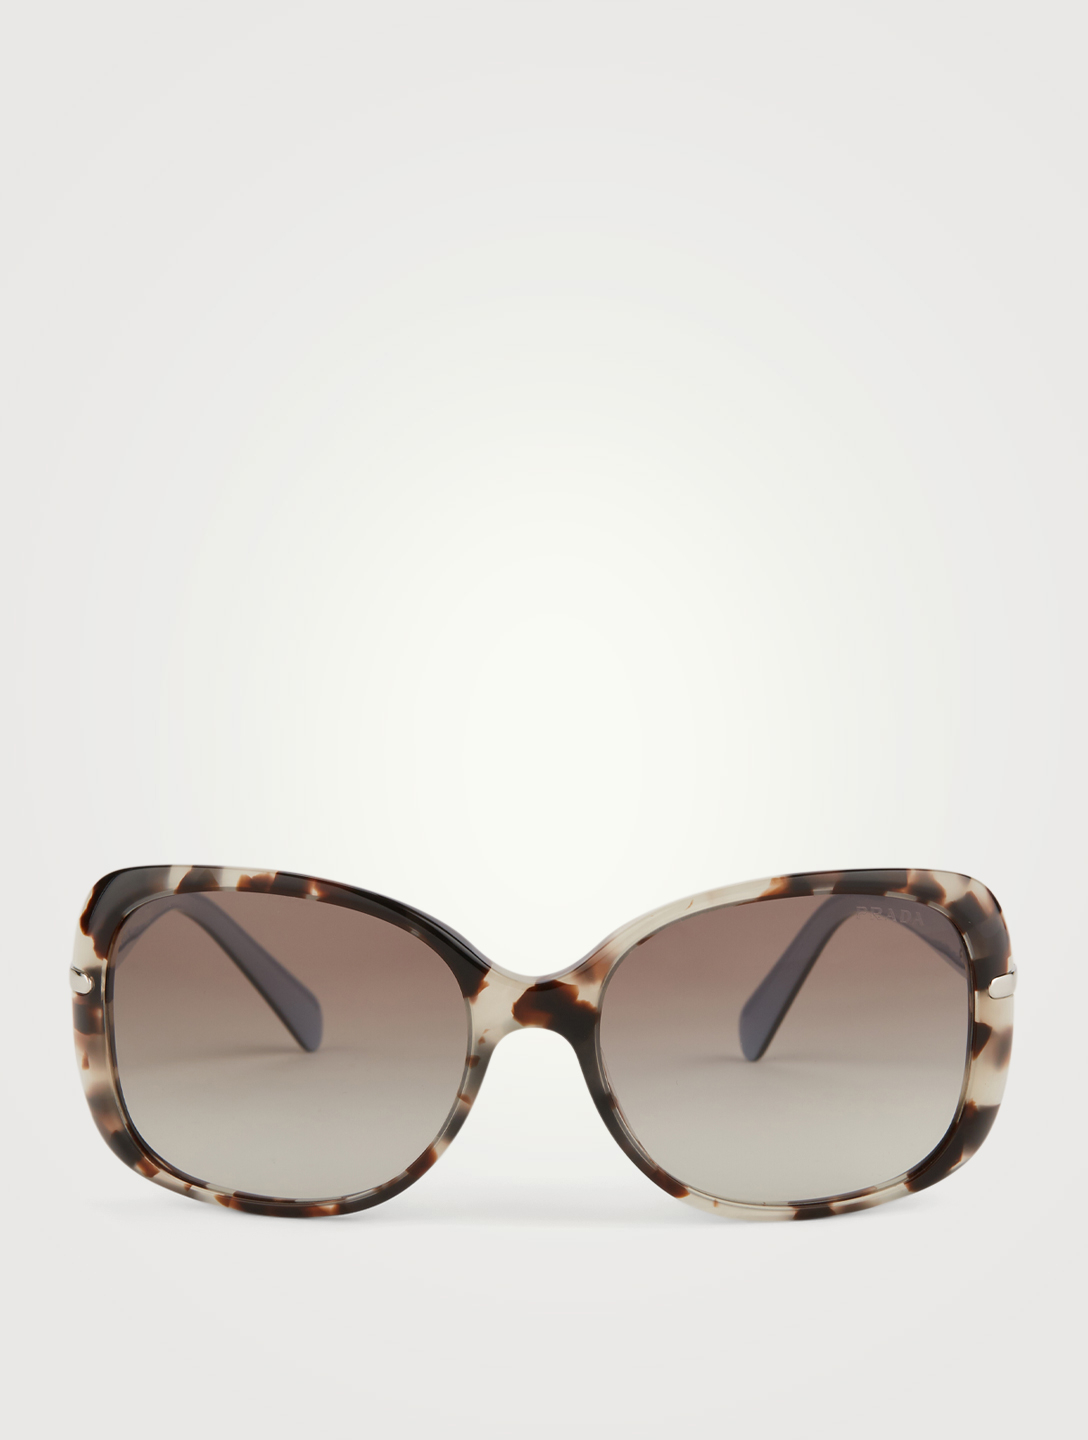 PRADA Square Sunglasses Women's Neutral